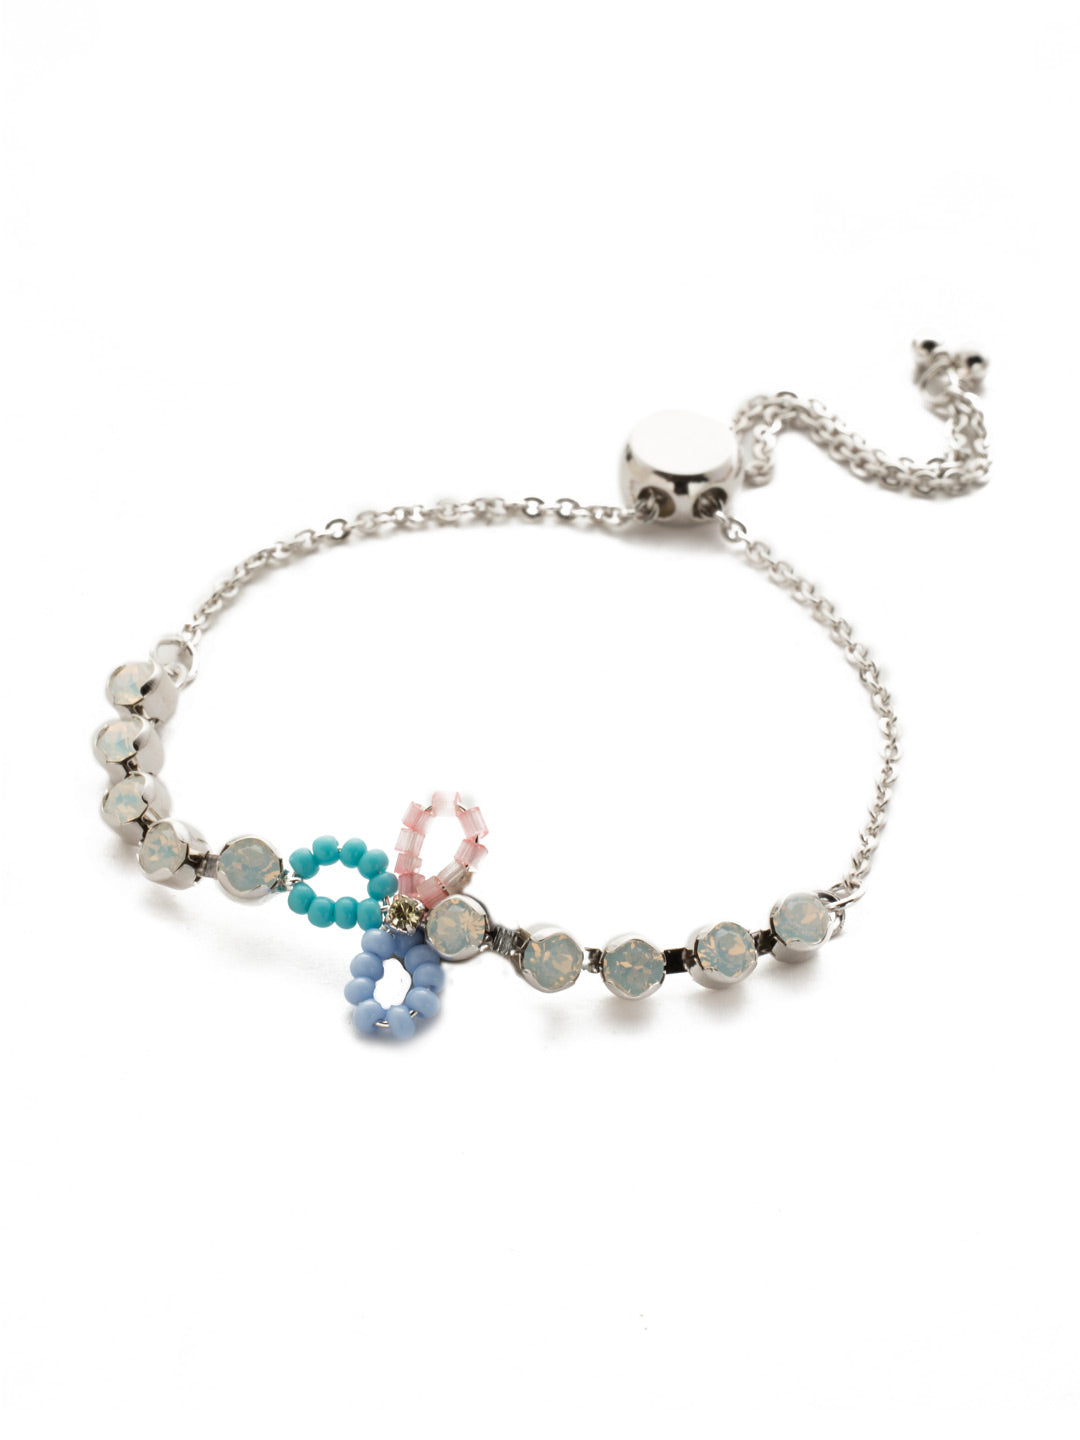 Morning Mist Slider Bracelet - BEK41RHSSU